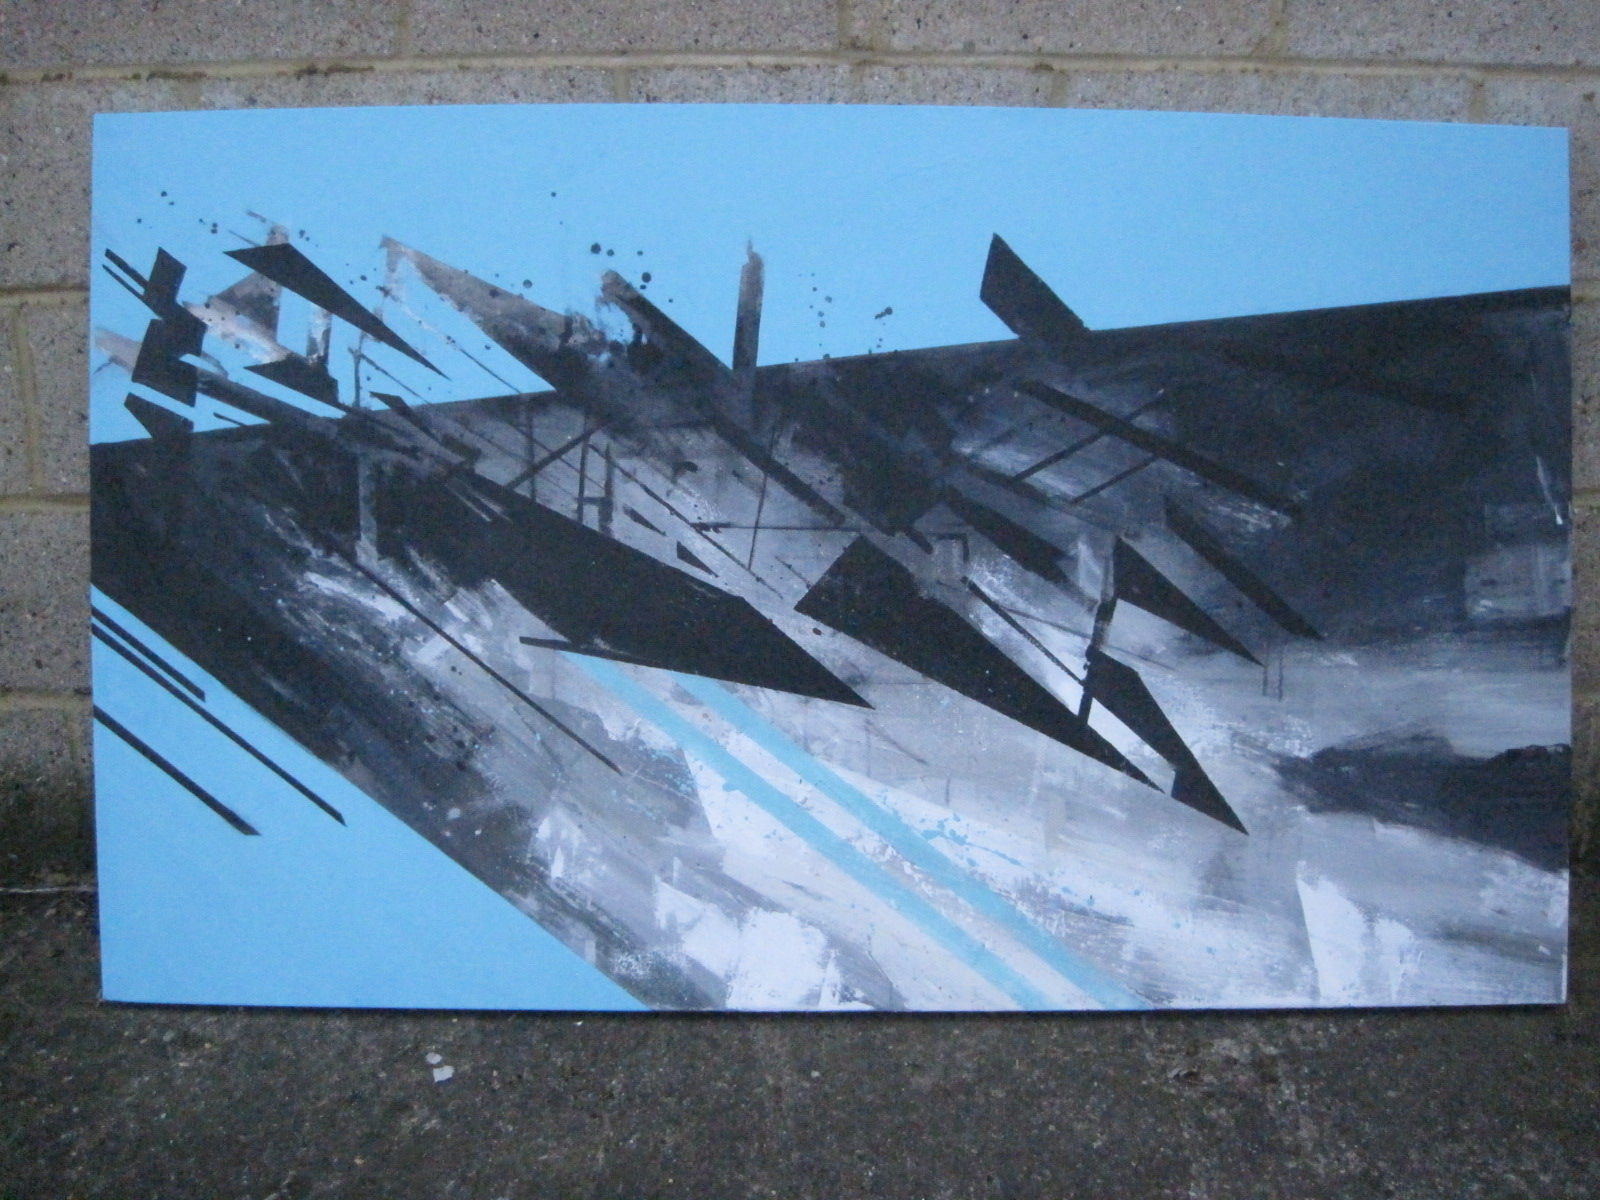 'Deconstucting Shards' 2011 Acrylic on canvas